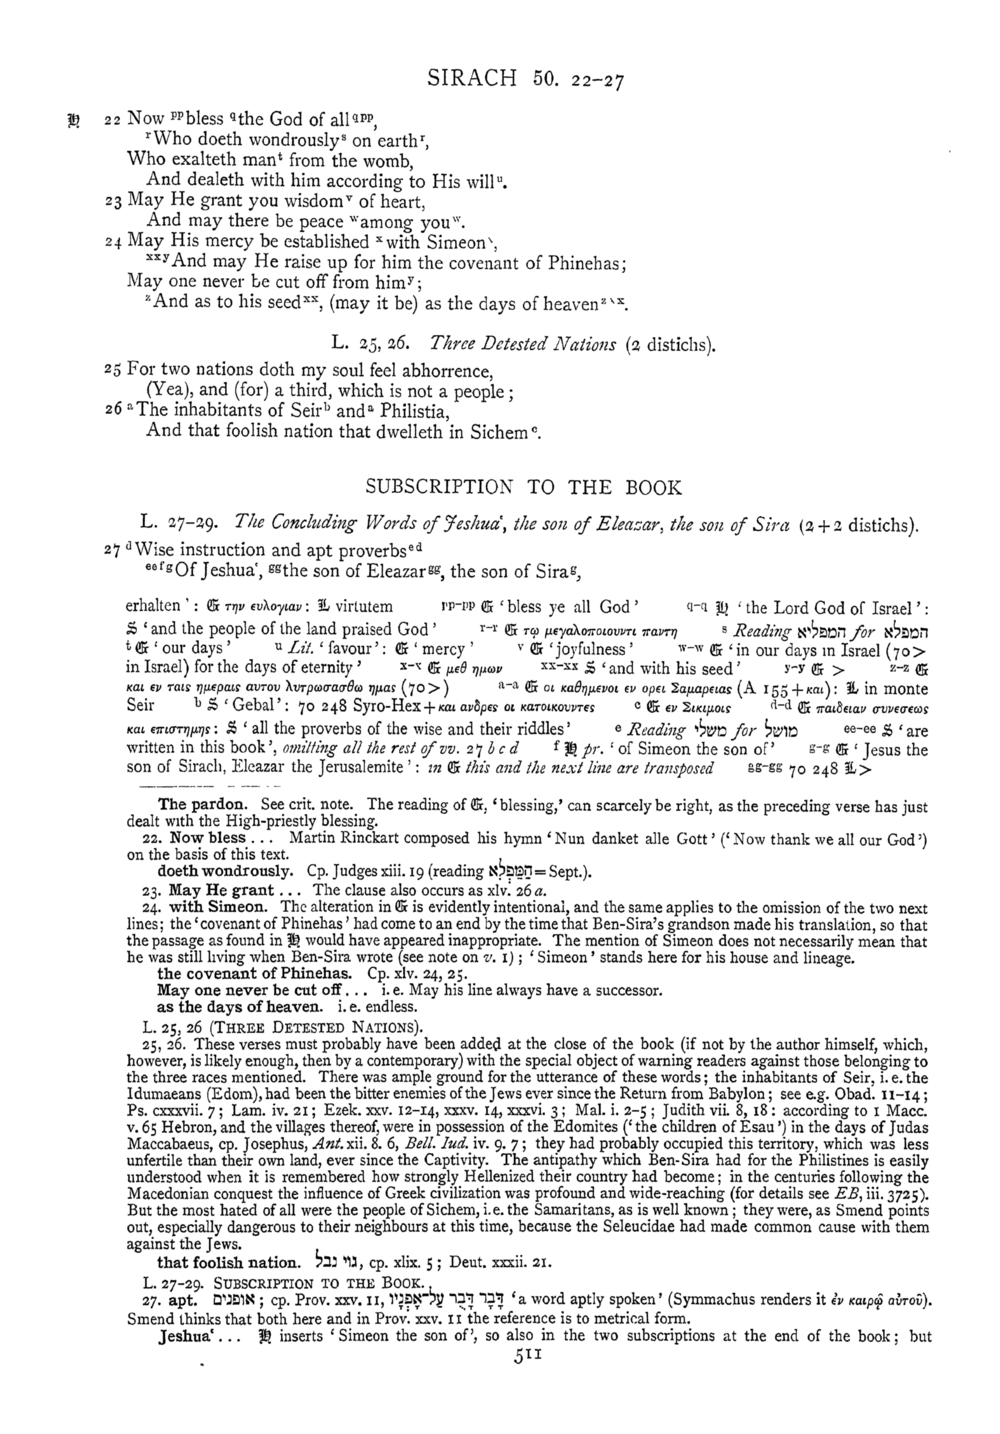 Image of page 511